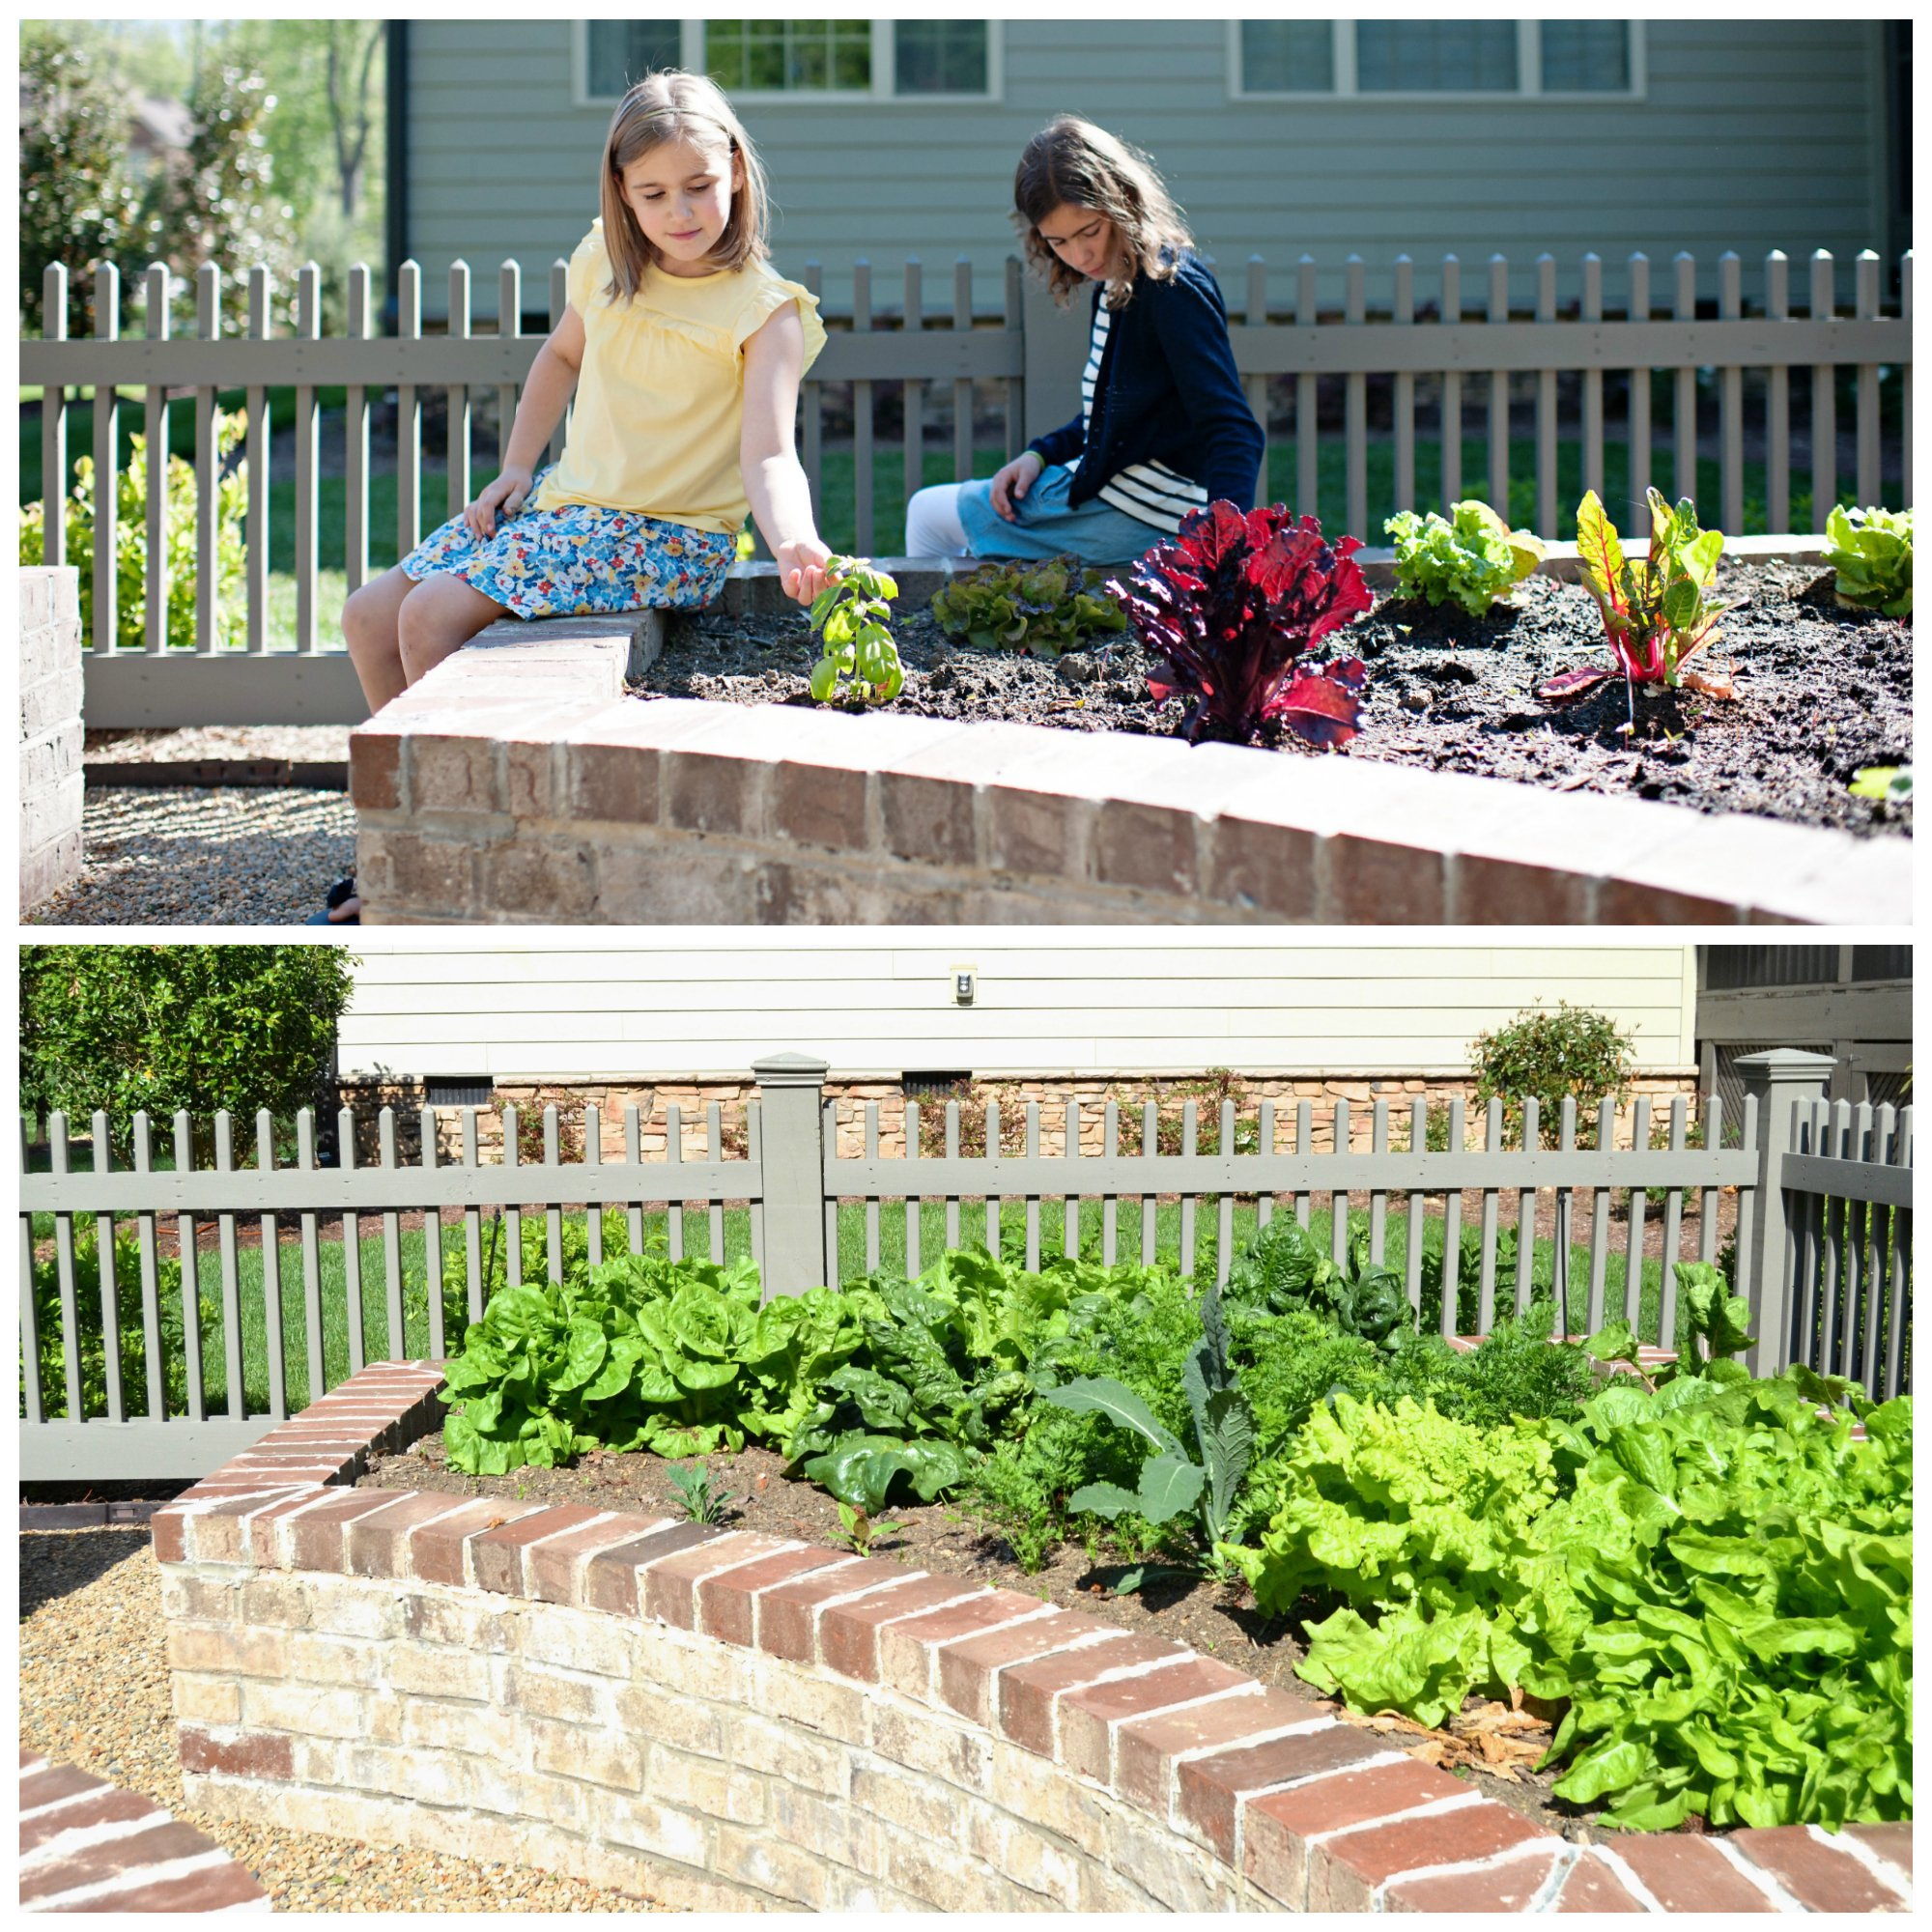 Our Veggie Garden: From Sad to Spectacular! on 100 Days of Real Food